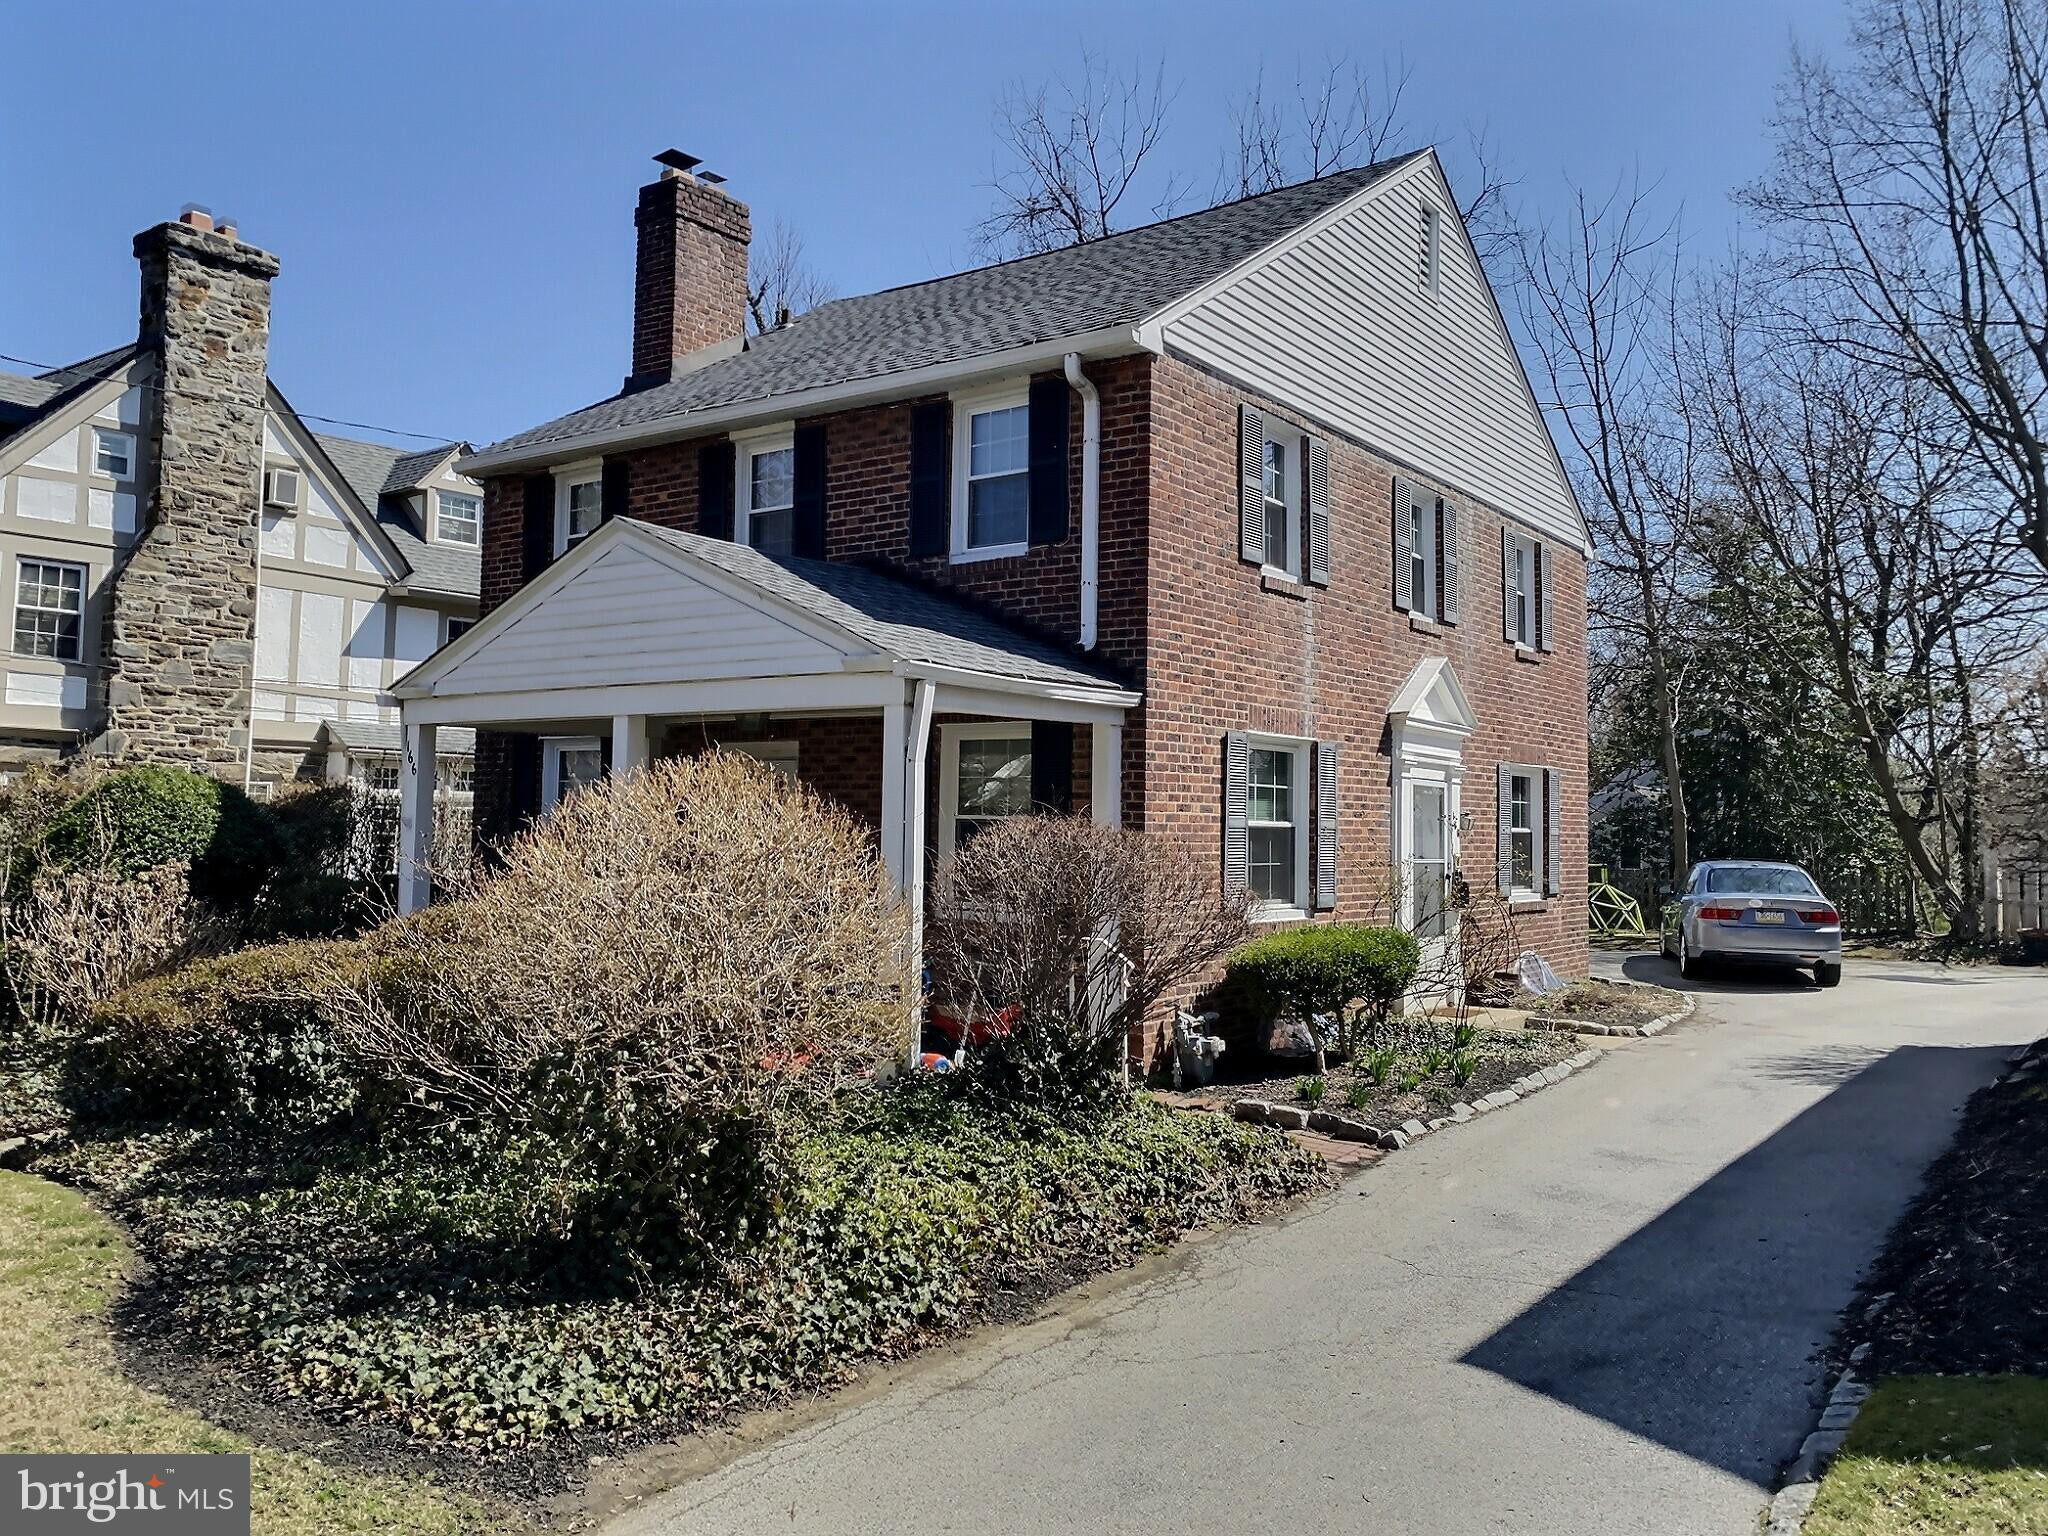 Currently tenant occupied, this 3 bed 3 bath brick colonial has so much potential as an investment property or for an end user! First floor has a large living room with fireplace, the formal dining room leads to the kitchen with an eat in area and large pantry. First floor laundry room is located off the kitchen. There is a full bath on the first floor adjacent to the attached garage-currently being used for storage-that can be converted into an extra living space or bedroom. 3 large bedrooms - all with windows on 2 walls, and 2 full bathrooms upstairs. Family room is located in the basement & is a great space with high ceilings and natural light. With a covered porch, loads of storage throughout, wonderful walk to location, Lower Merion Schools this Bala home has so much to offer. Tenant occupied until July 31, 2021, Open house scheduled for Sunday 10am-1pm, Monday 1-3pm